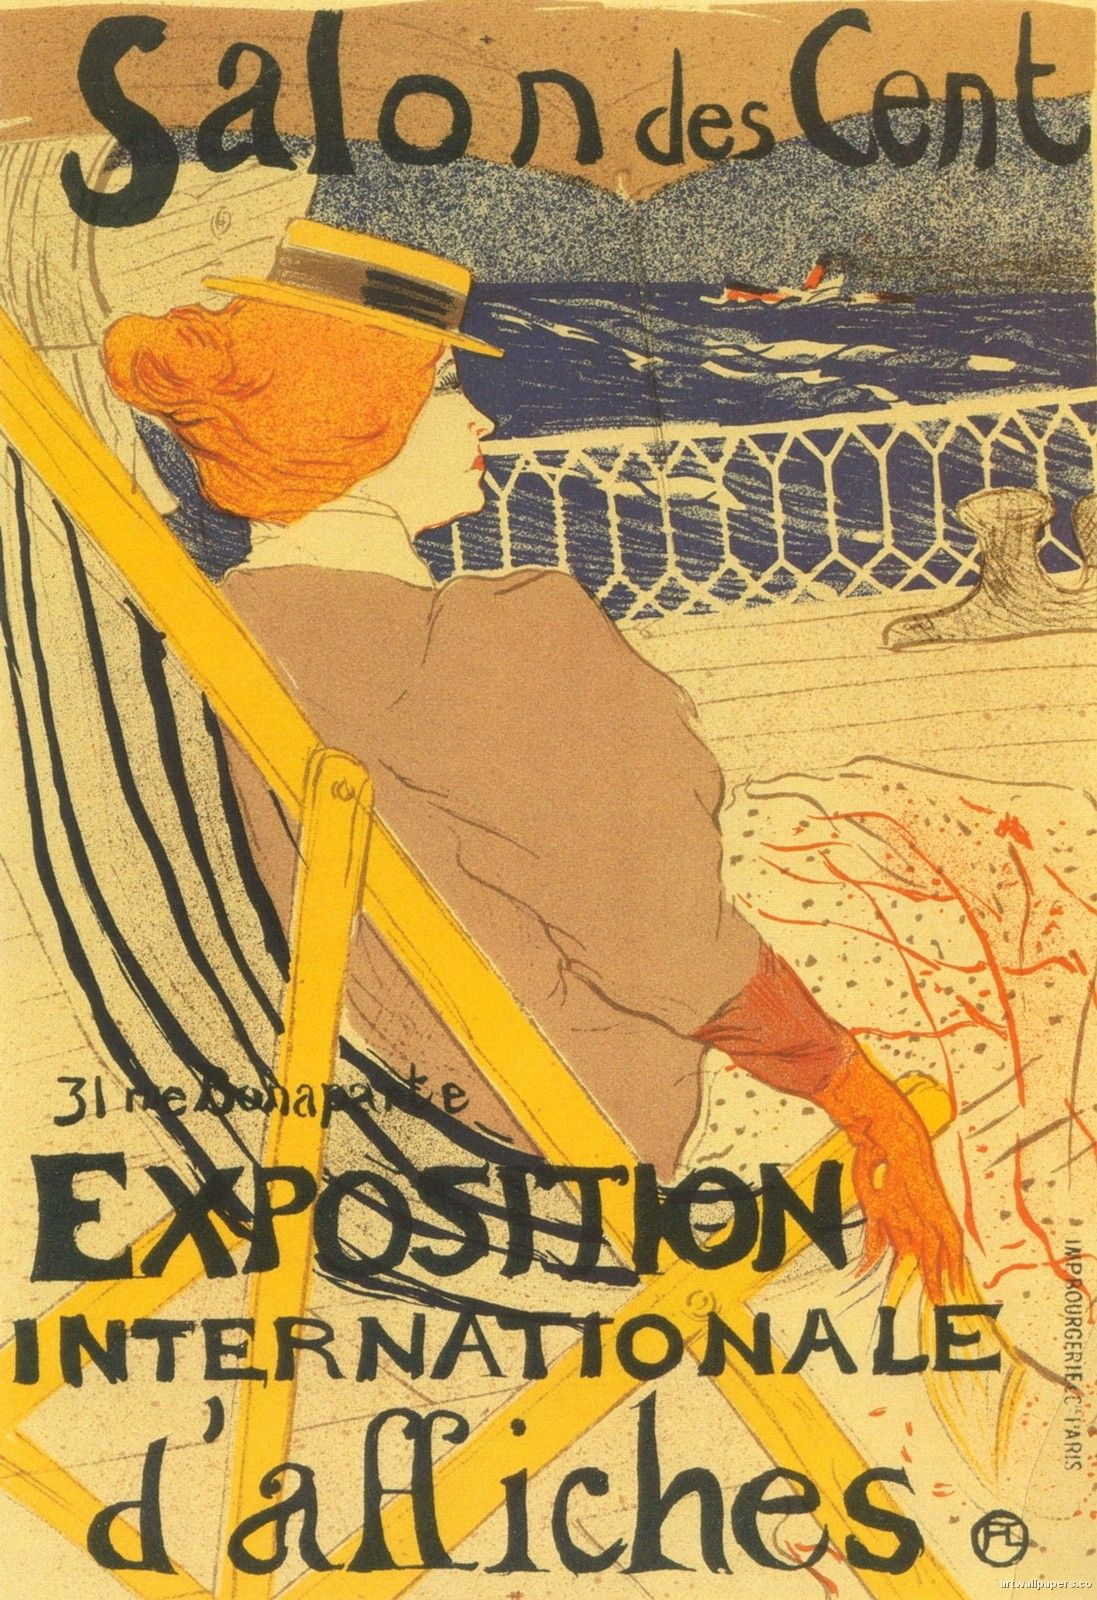 Henri De Toulouse Lautrec Henri De Toulouse Lautrec Paintings 119 Art Oil Paintings A Henri De Toulouse Lautrec Art Nouveau Poster Toulouse Lautrec Poster